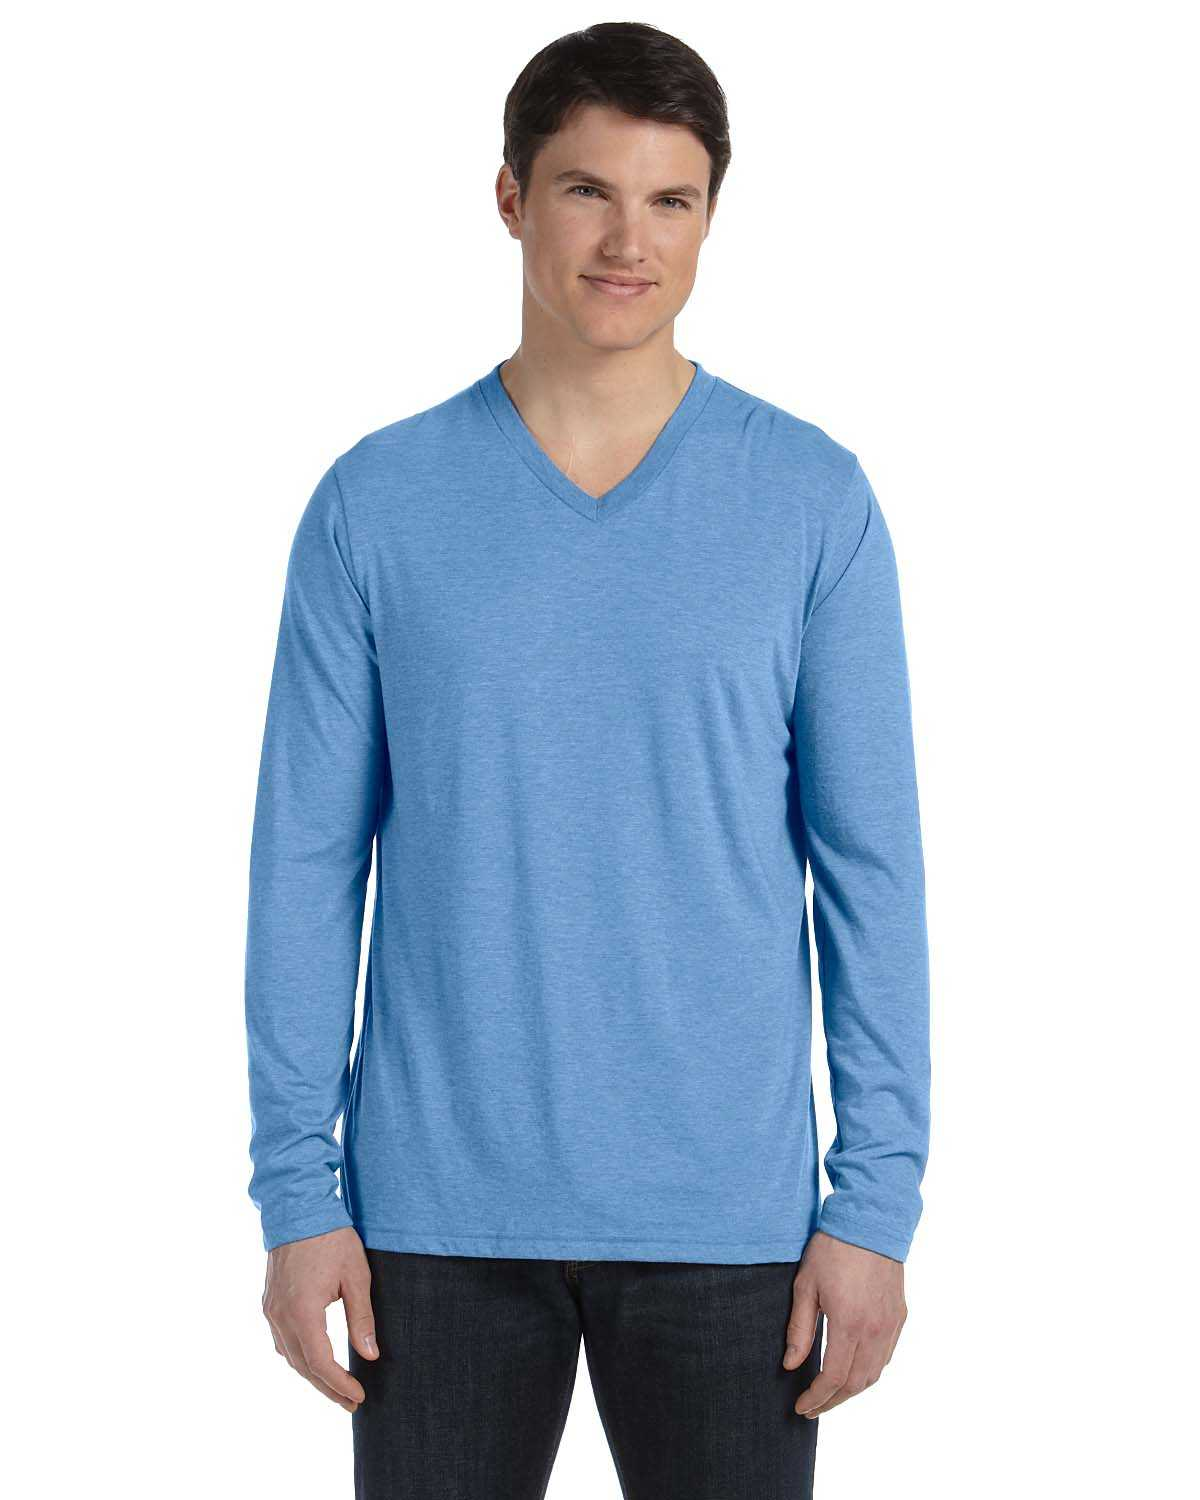 554078ea3ce ... 3425 Unisex Jersey Long-Sleeve V-Neck T-Shirt. 3425_51 View larger.  Previous. 3425_51 ...